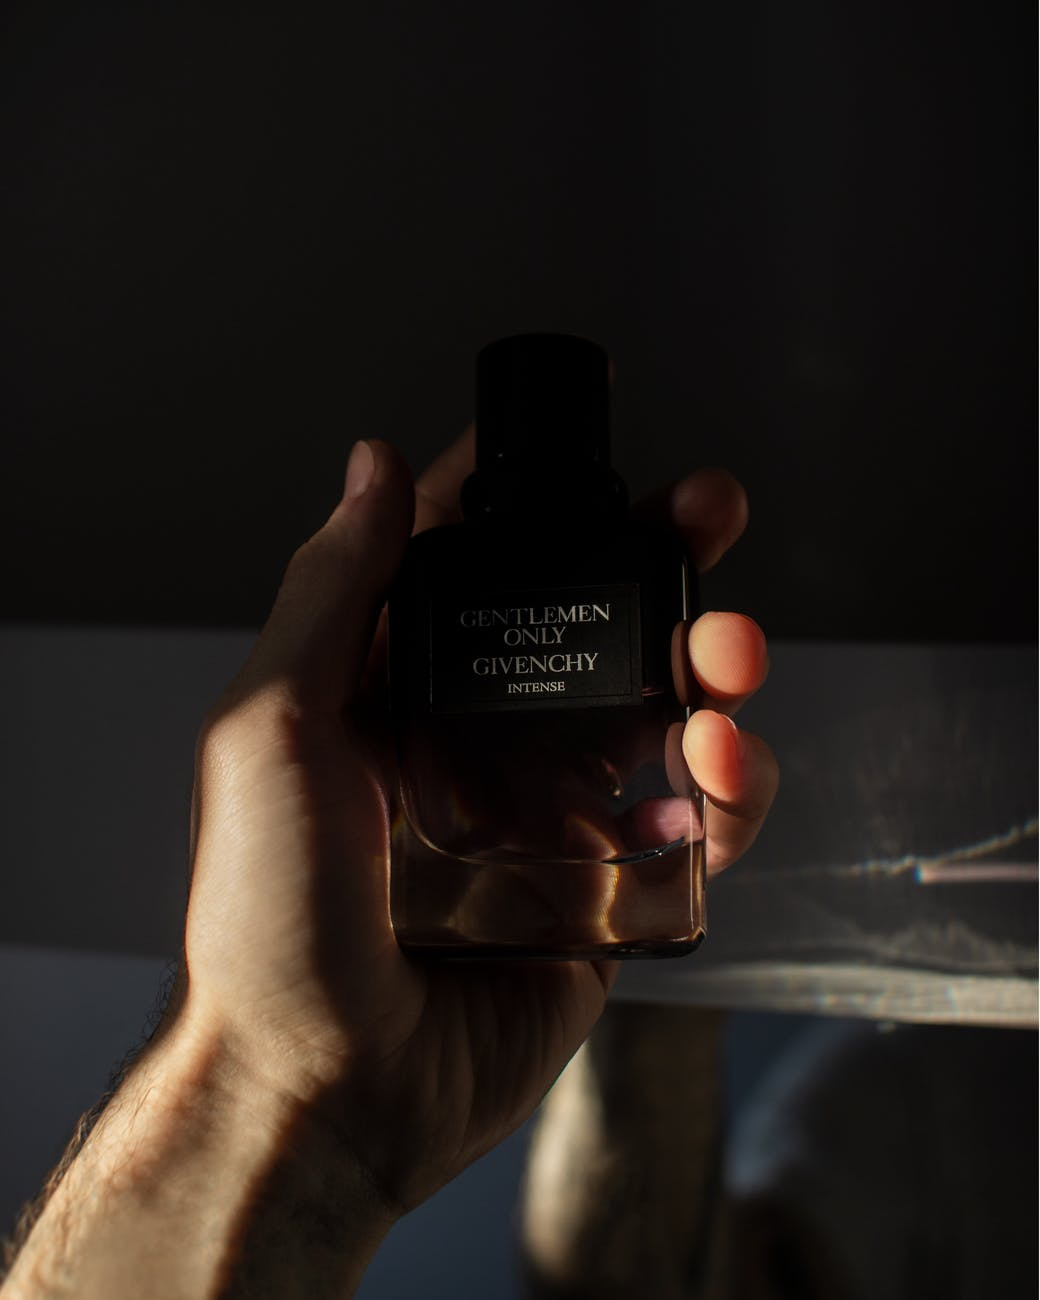 photo of person holding a gentlemen only cologne bottle by givenchy